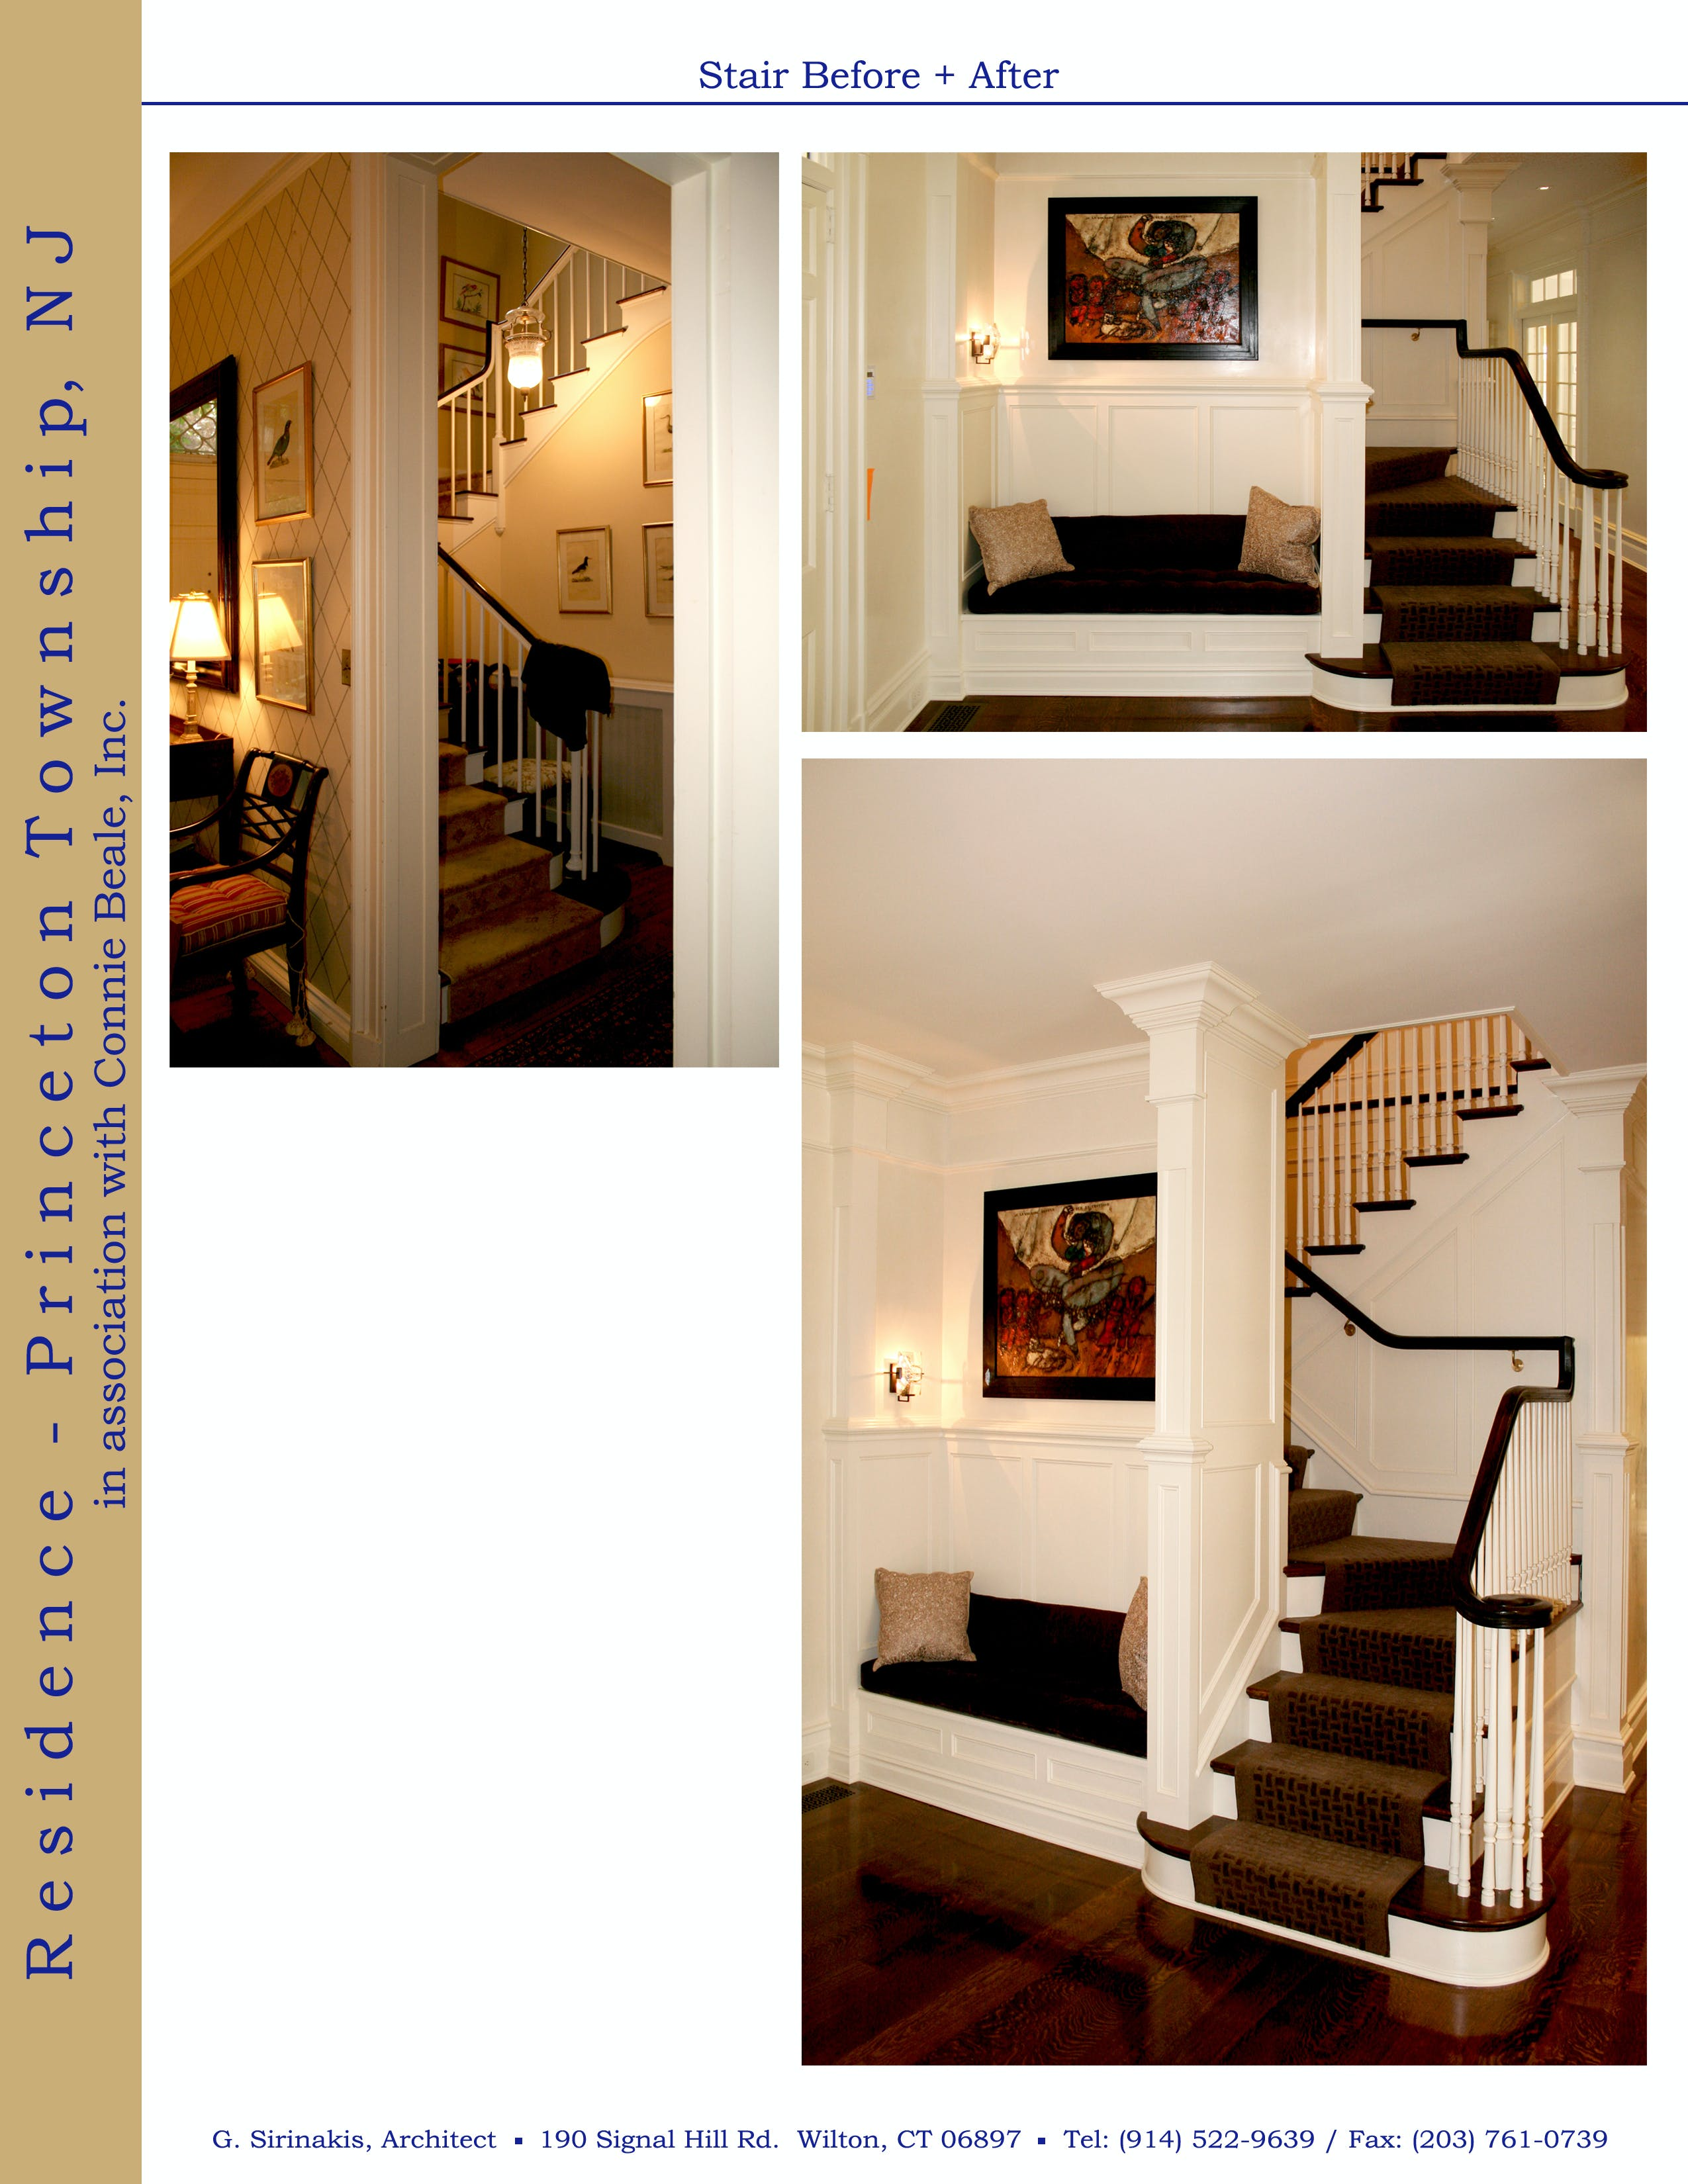 Interior Design Jobs In Princeton Nj